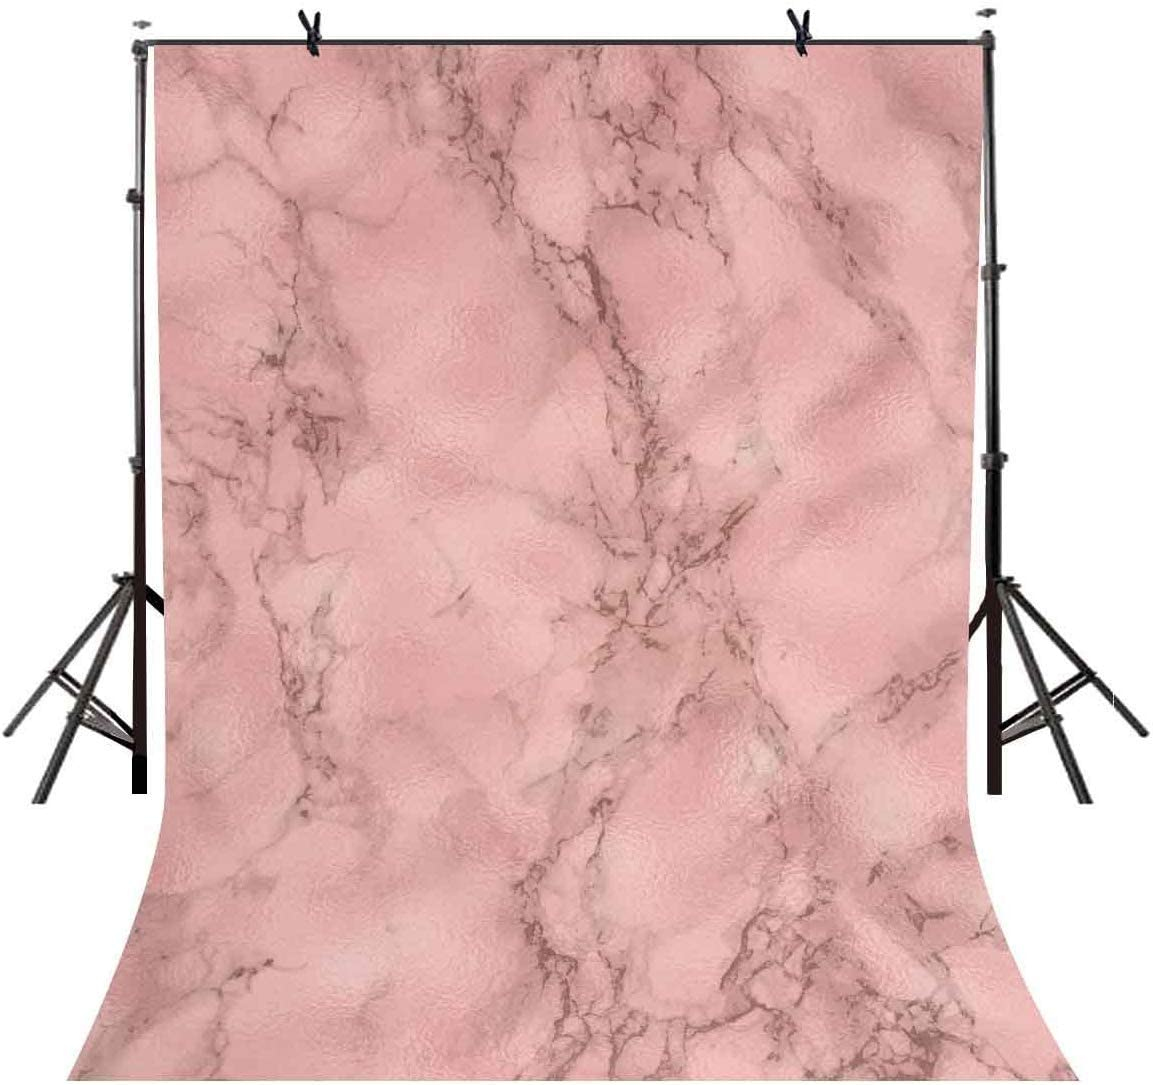 CdHBH 10x12ft Simple Style Light Pink Marble Pattern Vinyl Material Studio Background Cloth Festival Venue Party Layout Photo Studio Photo Background Wallpaper Home Decoration